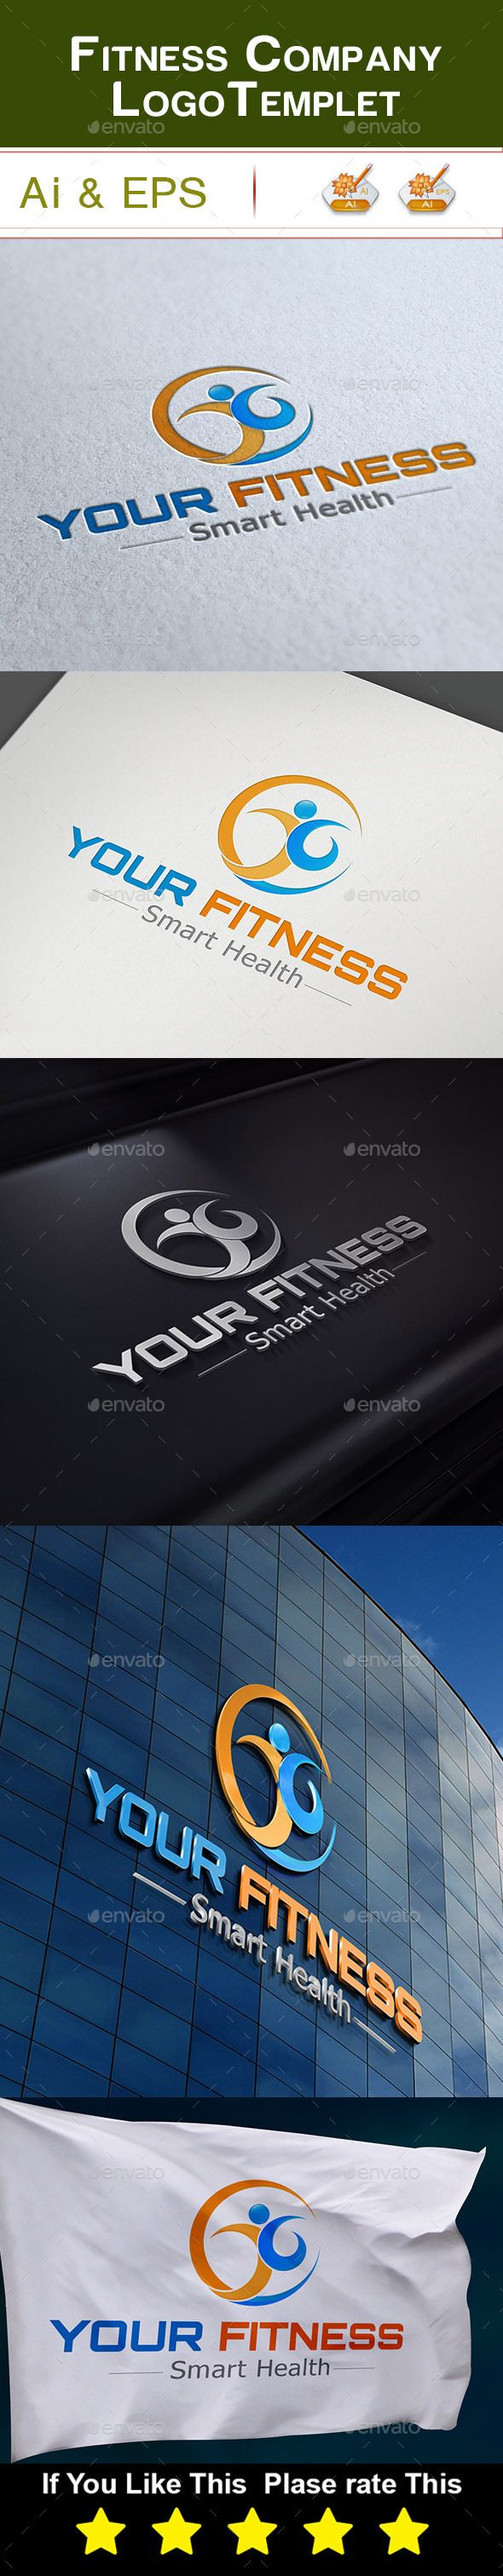 Fitness Company Logo This is a fitness company Logo Template . This template download contains 1 AI,& 1 EPS, Logo, which is 300 dpi CMYK files. All main elements are easily editable and customizable.